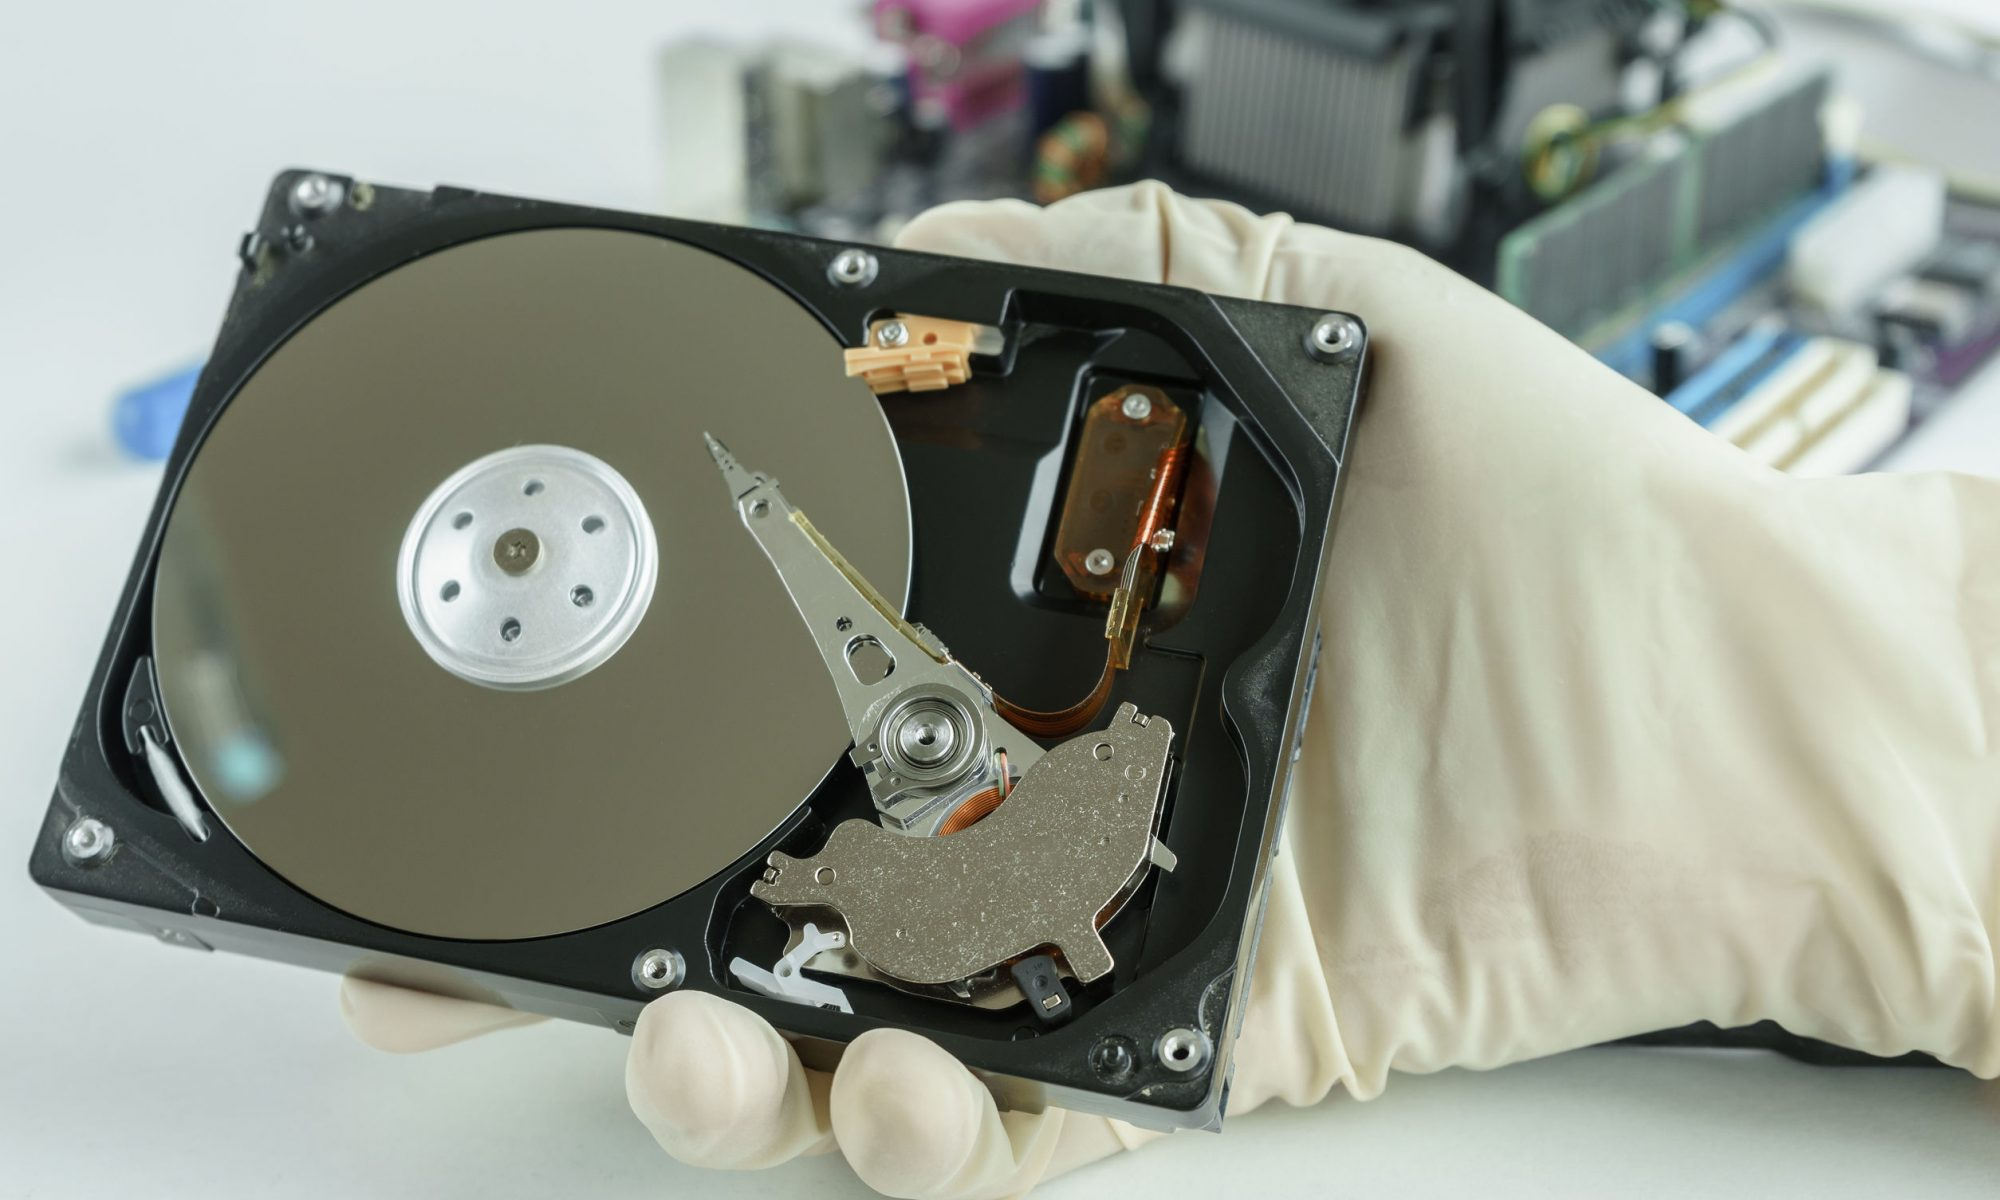 How to recover data from a broken external hard drive